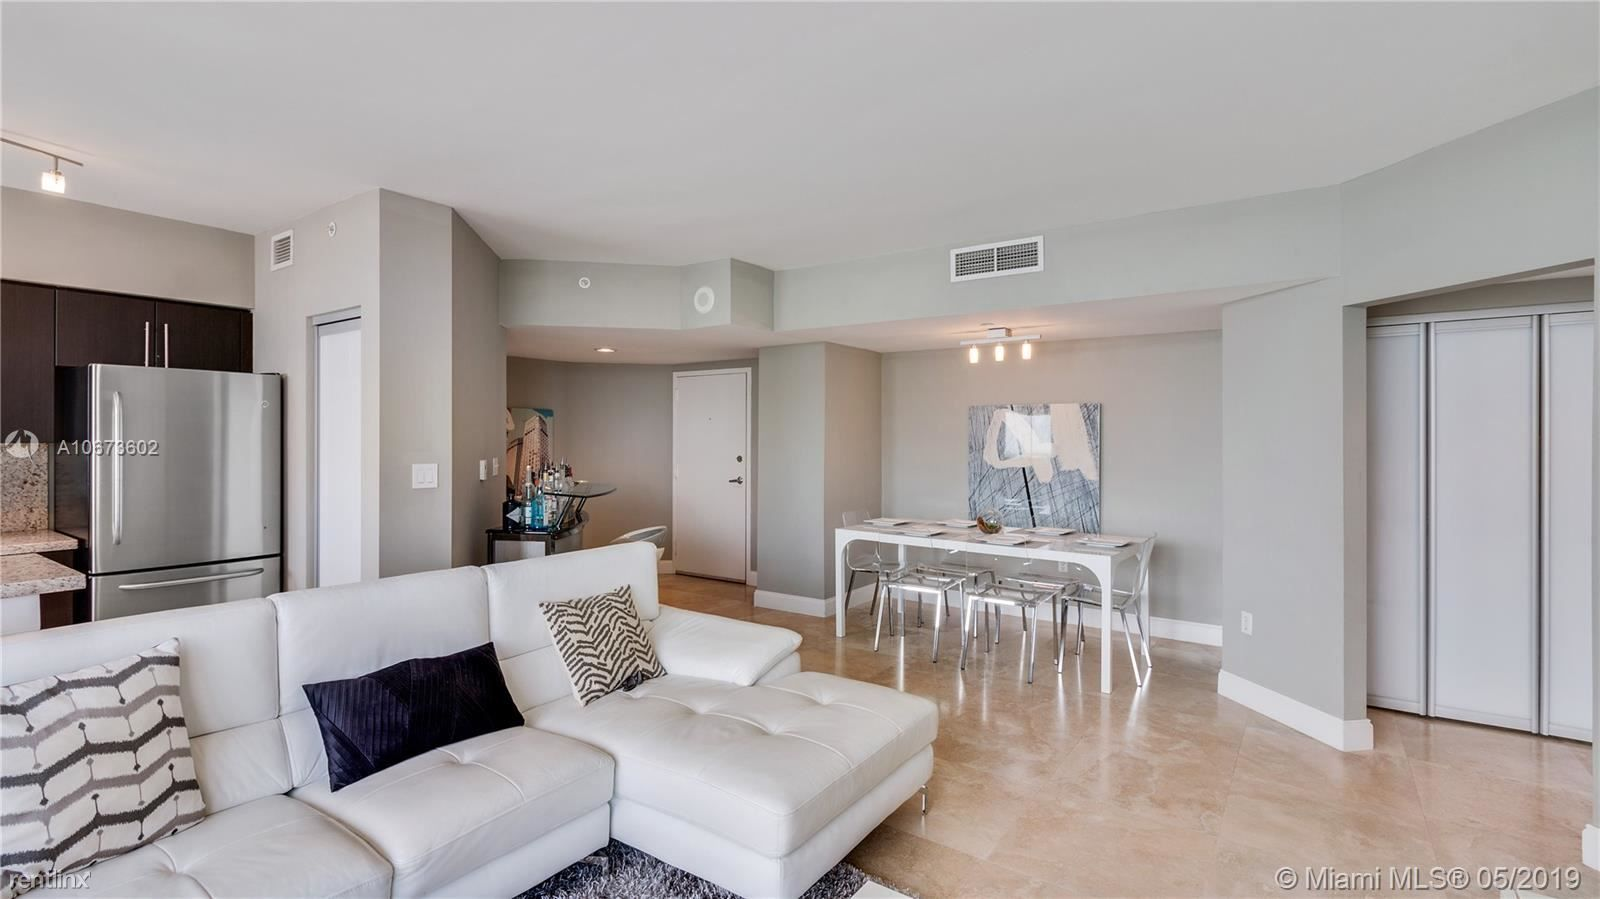 1330 West Ave Apt 1003 for rent